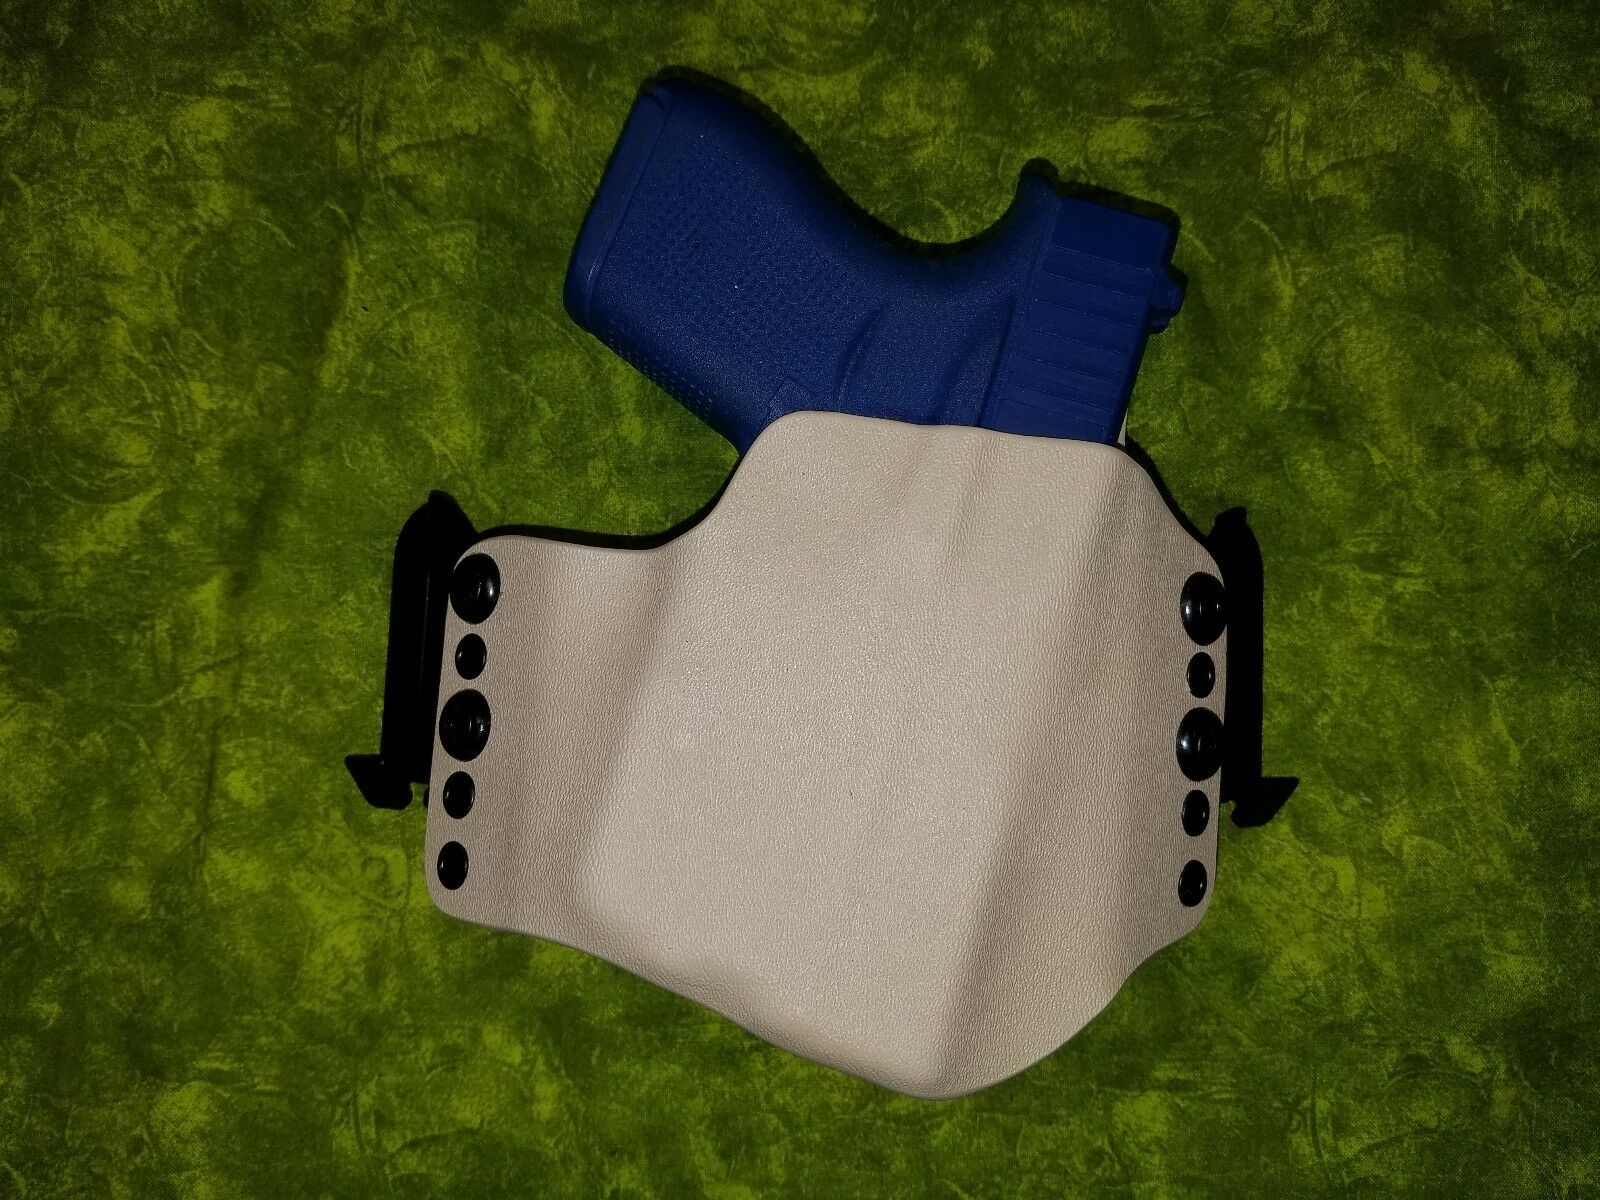 LOOK    SUPER NICE DESERT TAN KYDEX HOLSTER FOR STREAMLIGHT TLR-6 W/ SPEED CLIPS